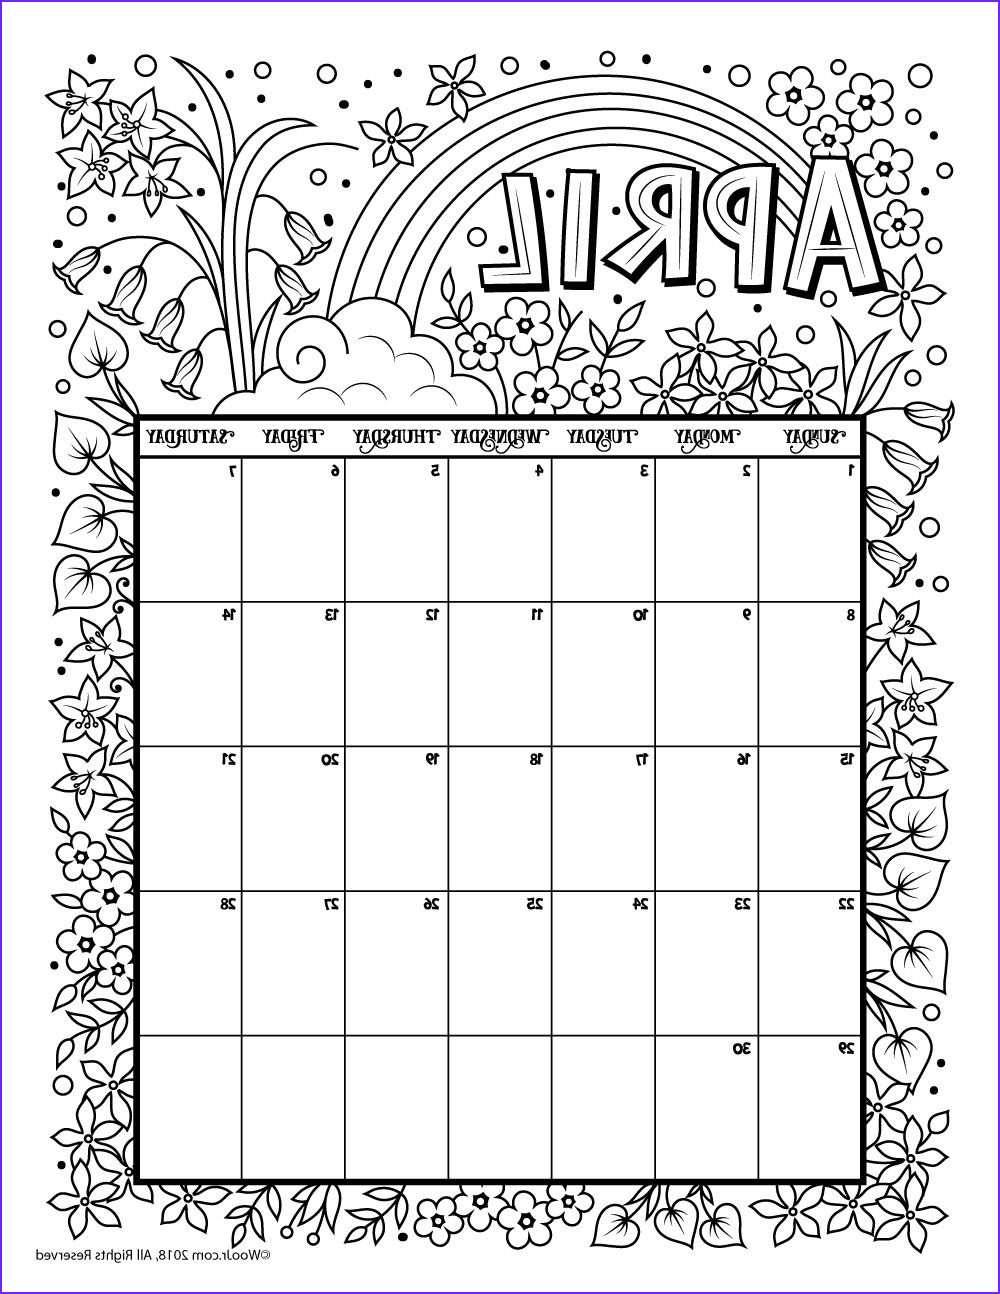 Coloring Book Calendar Unique Images Printable Coloring Calendar for 2019 and 2018